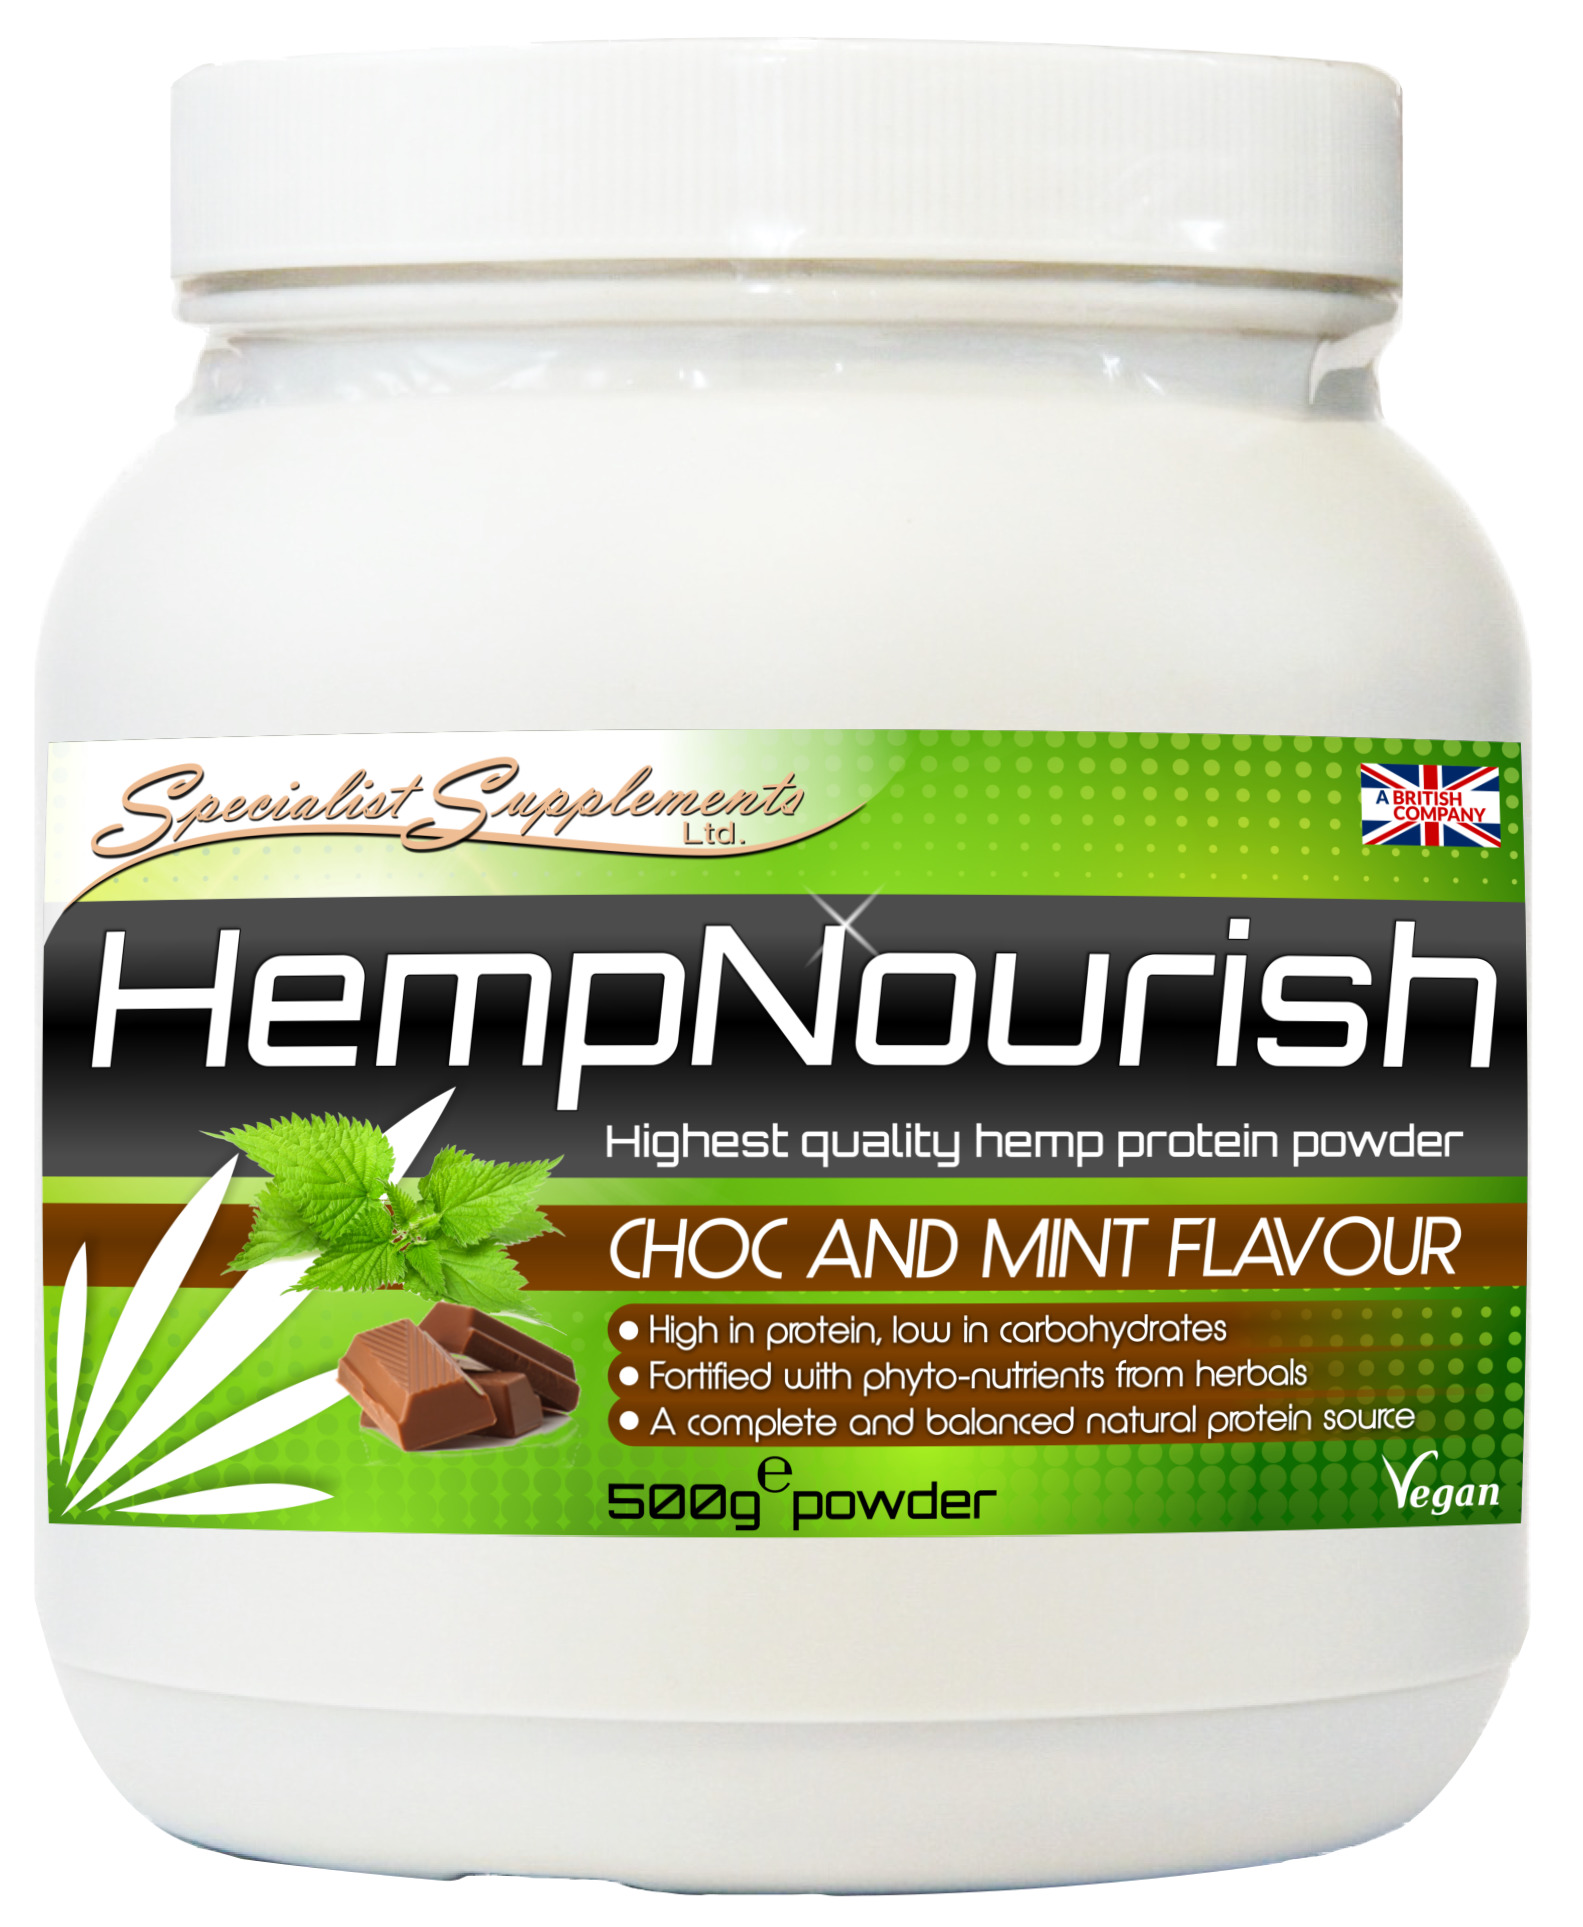 HempNourish - hemp protein powder, plus superfoods